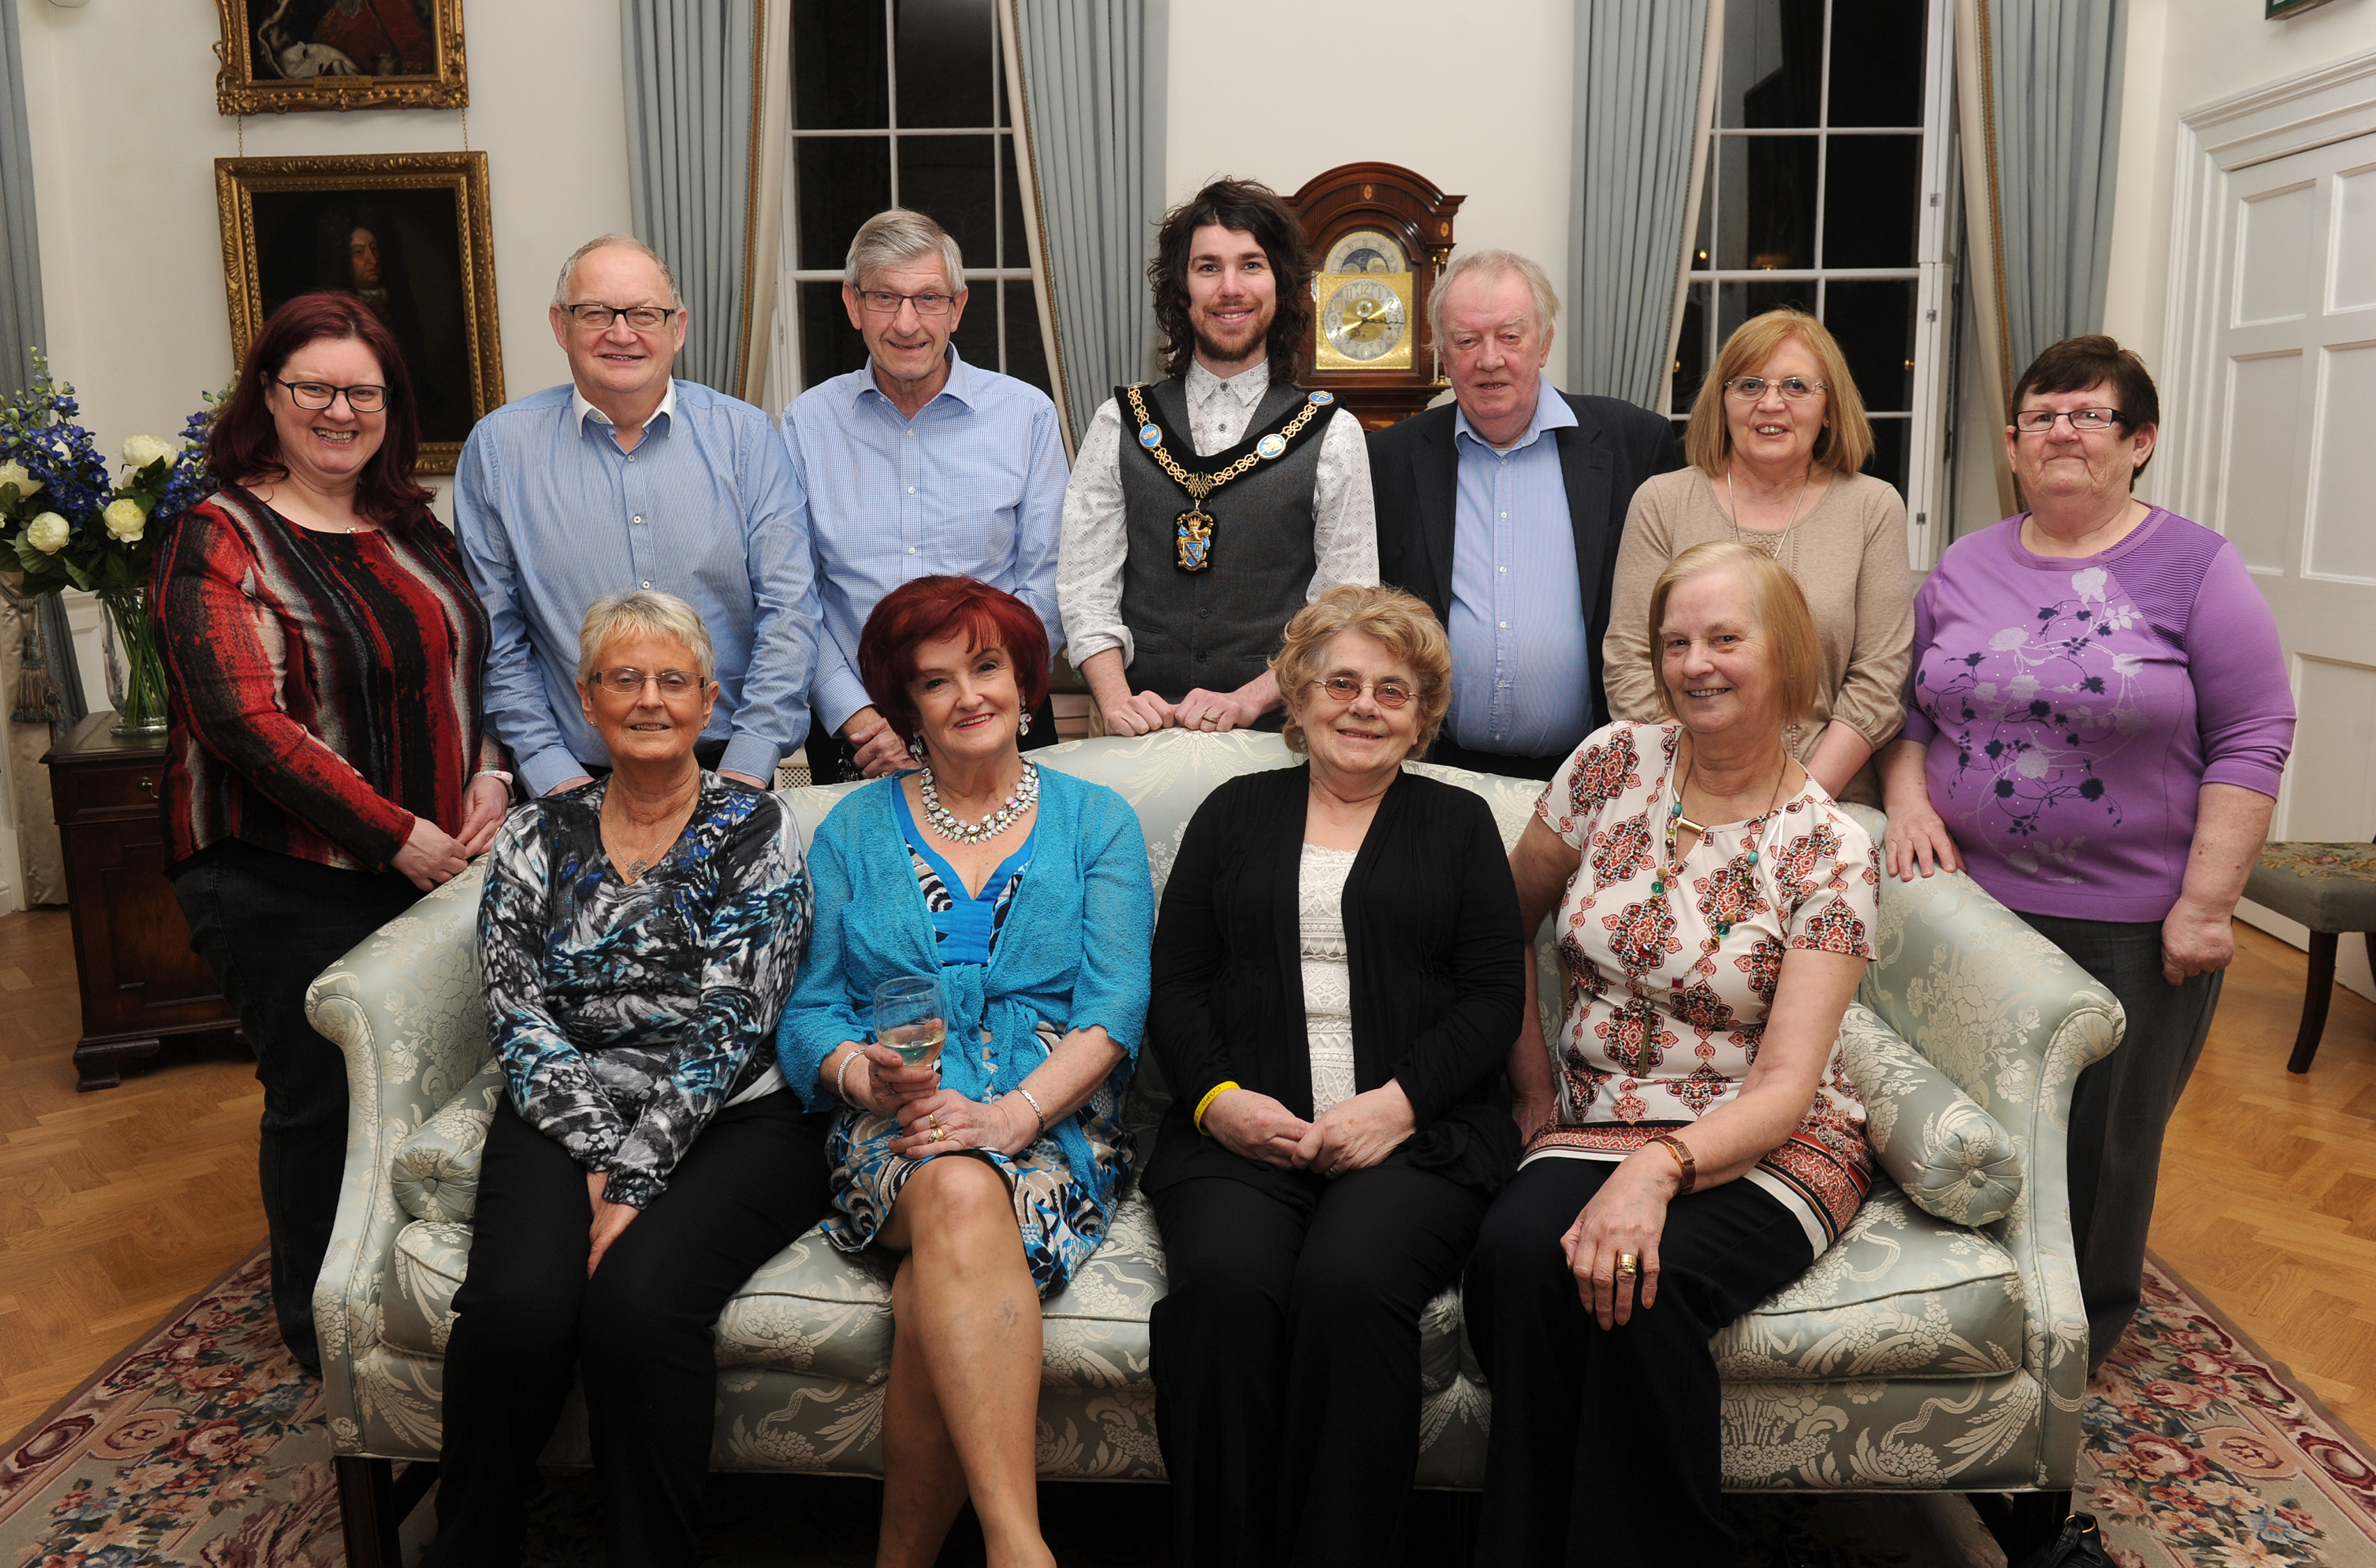 Recyclinghof Garath Brownlow Festival Committee Visit The Palace Armagh City